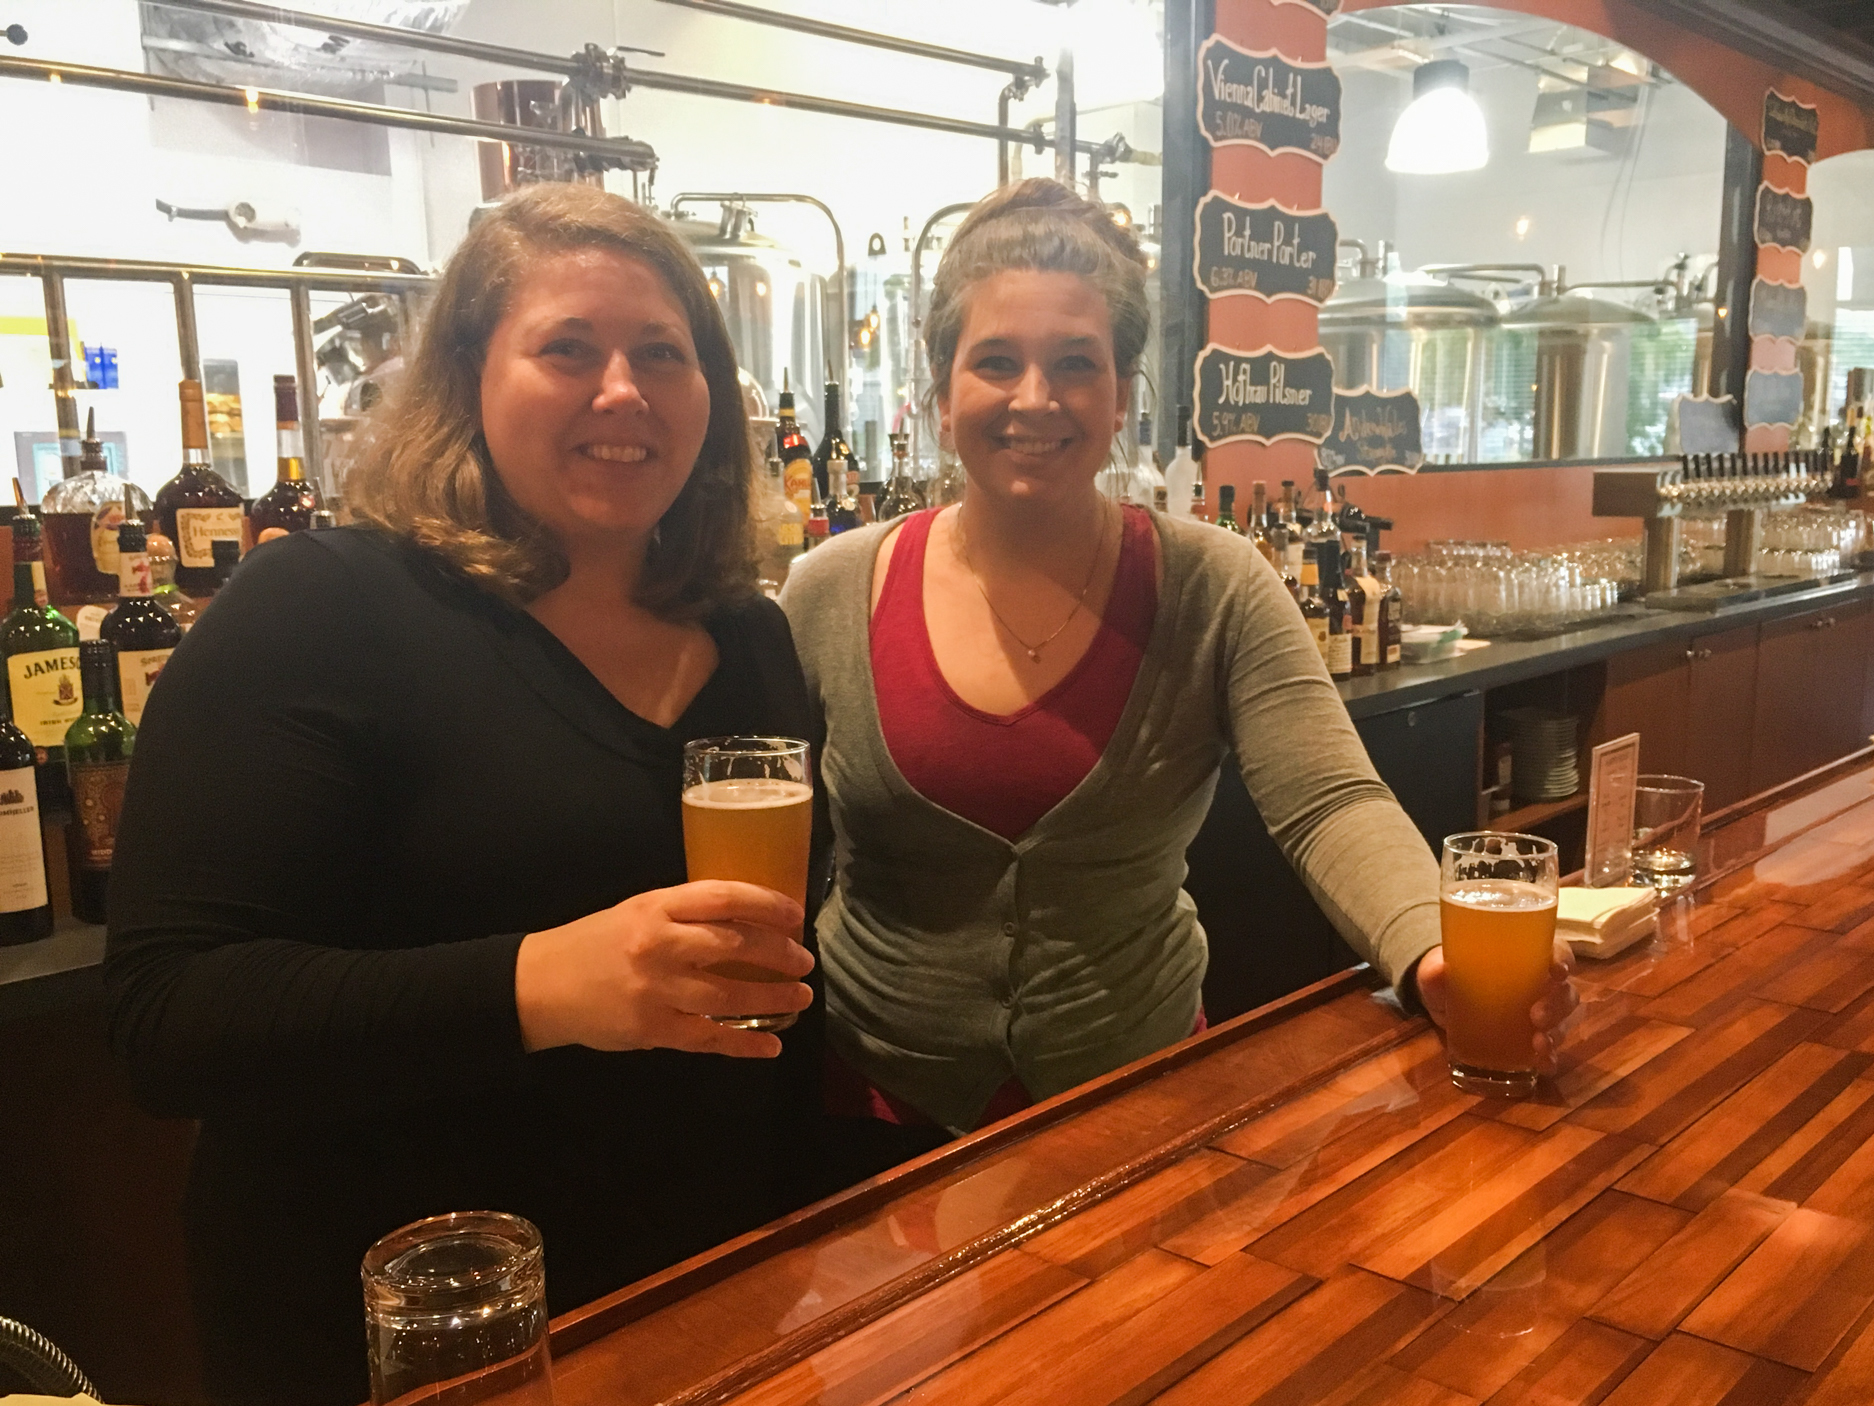 Sisters Catherine (left) and Margaret Portner have re-established Portner's Brewery, which was opened in Alexandria, Va., in 1869 by their great-great-grandfather, then closed during Prohibition. (Ari Shapiro/NPR)